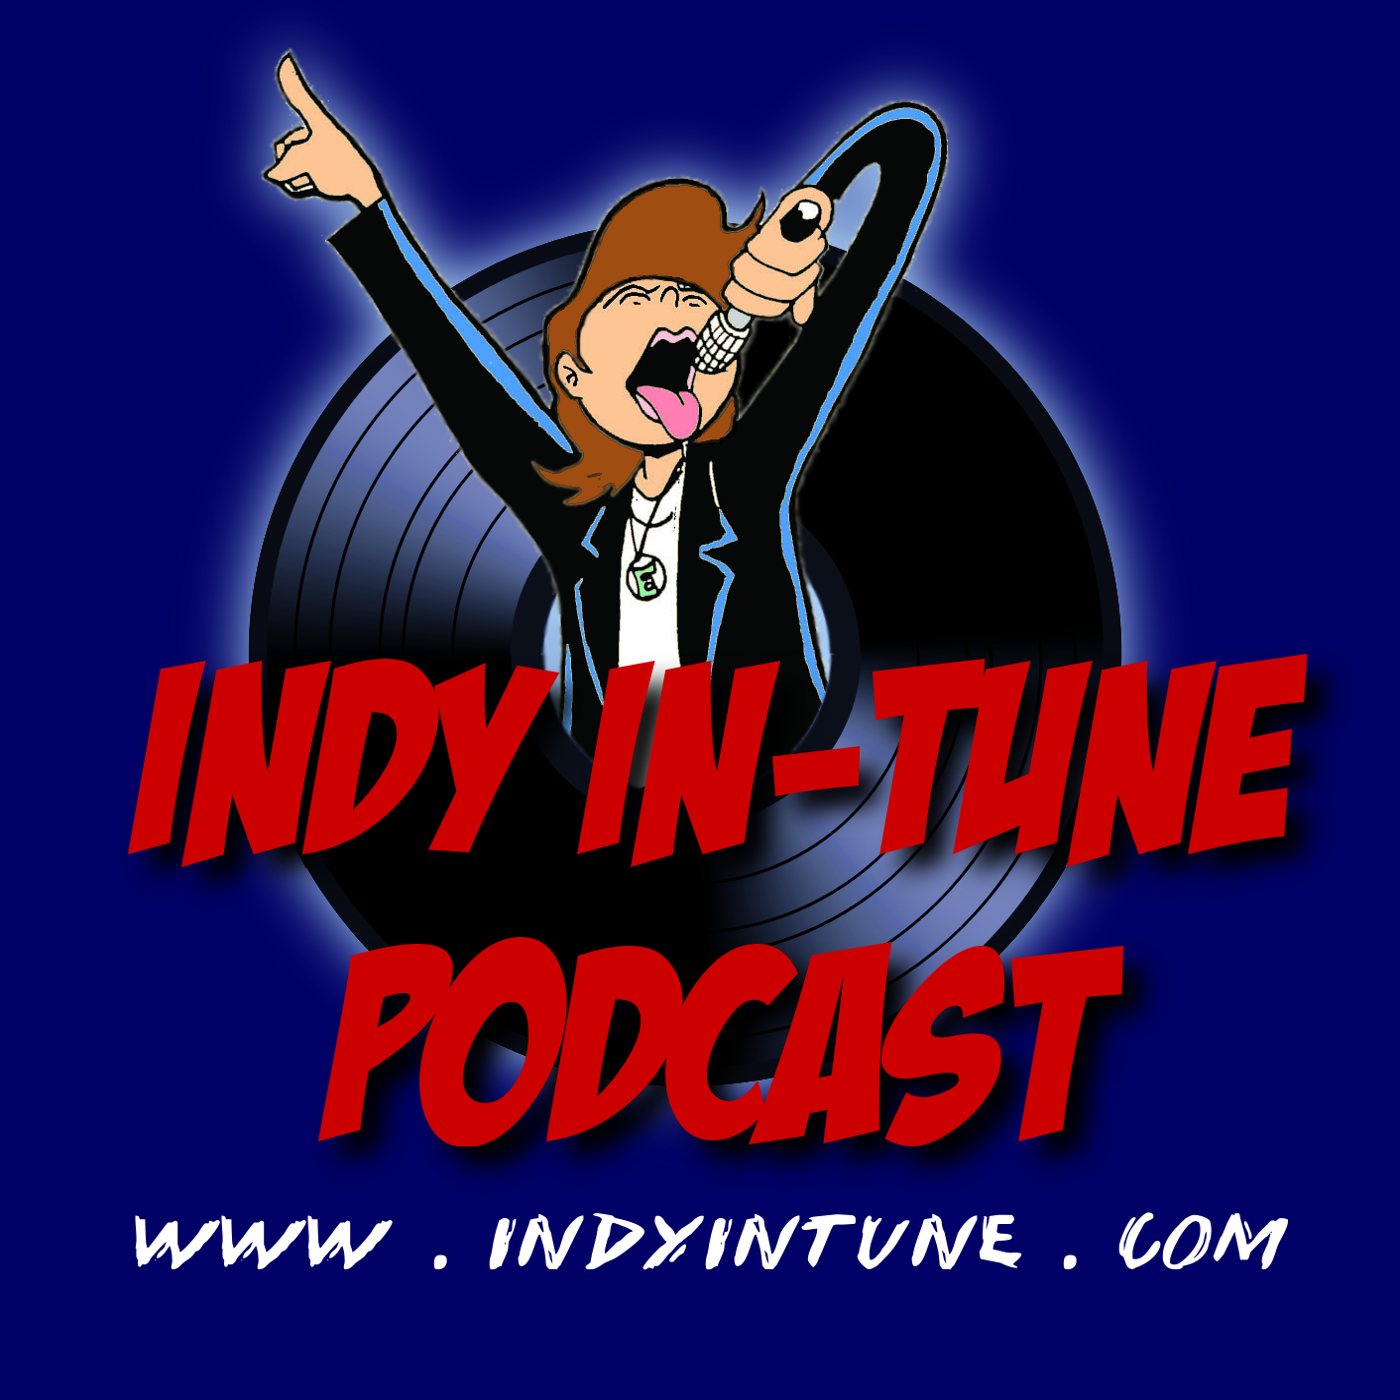 The Indy In-Tune Podcast